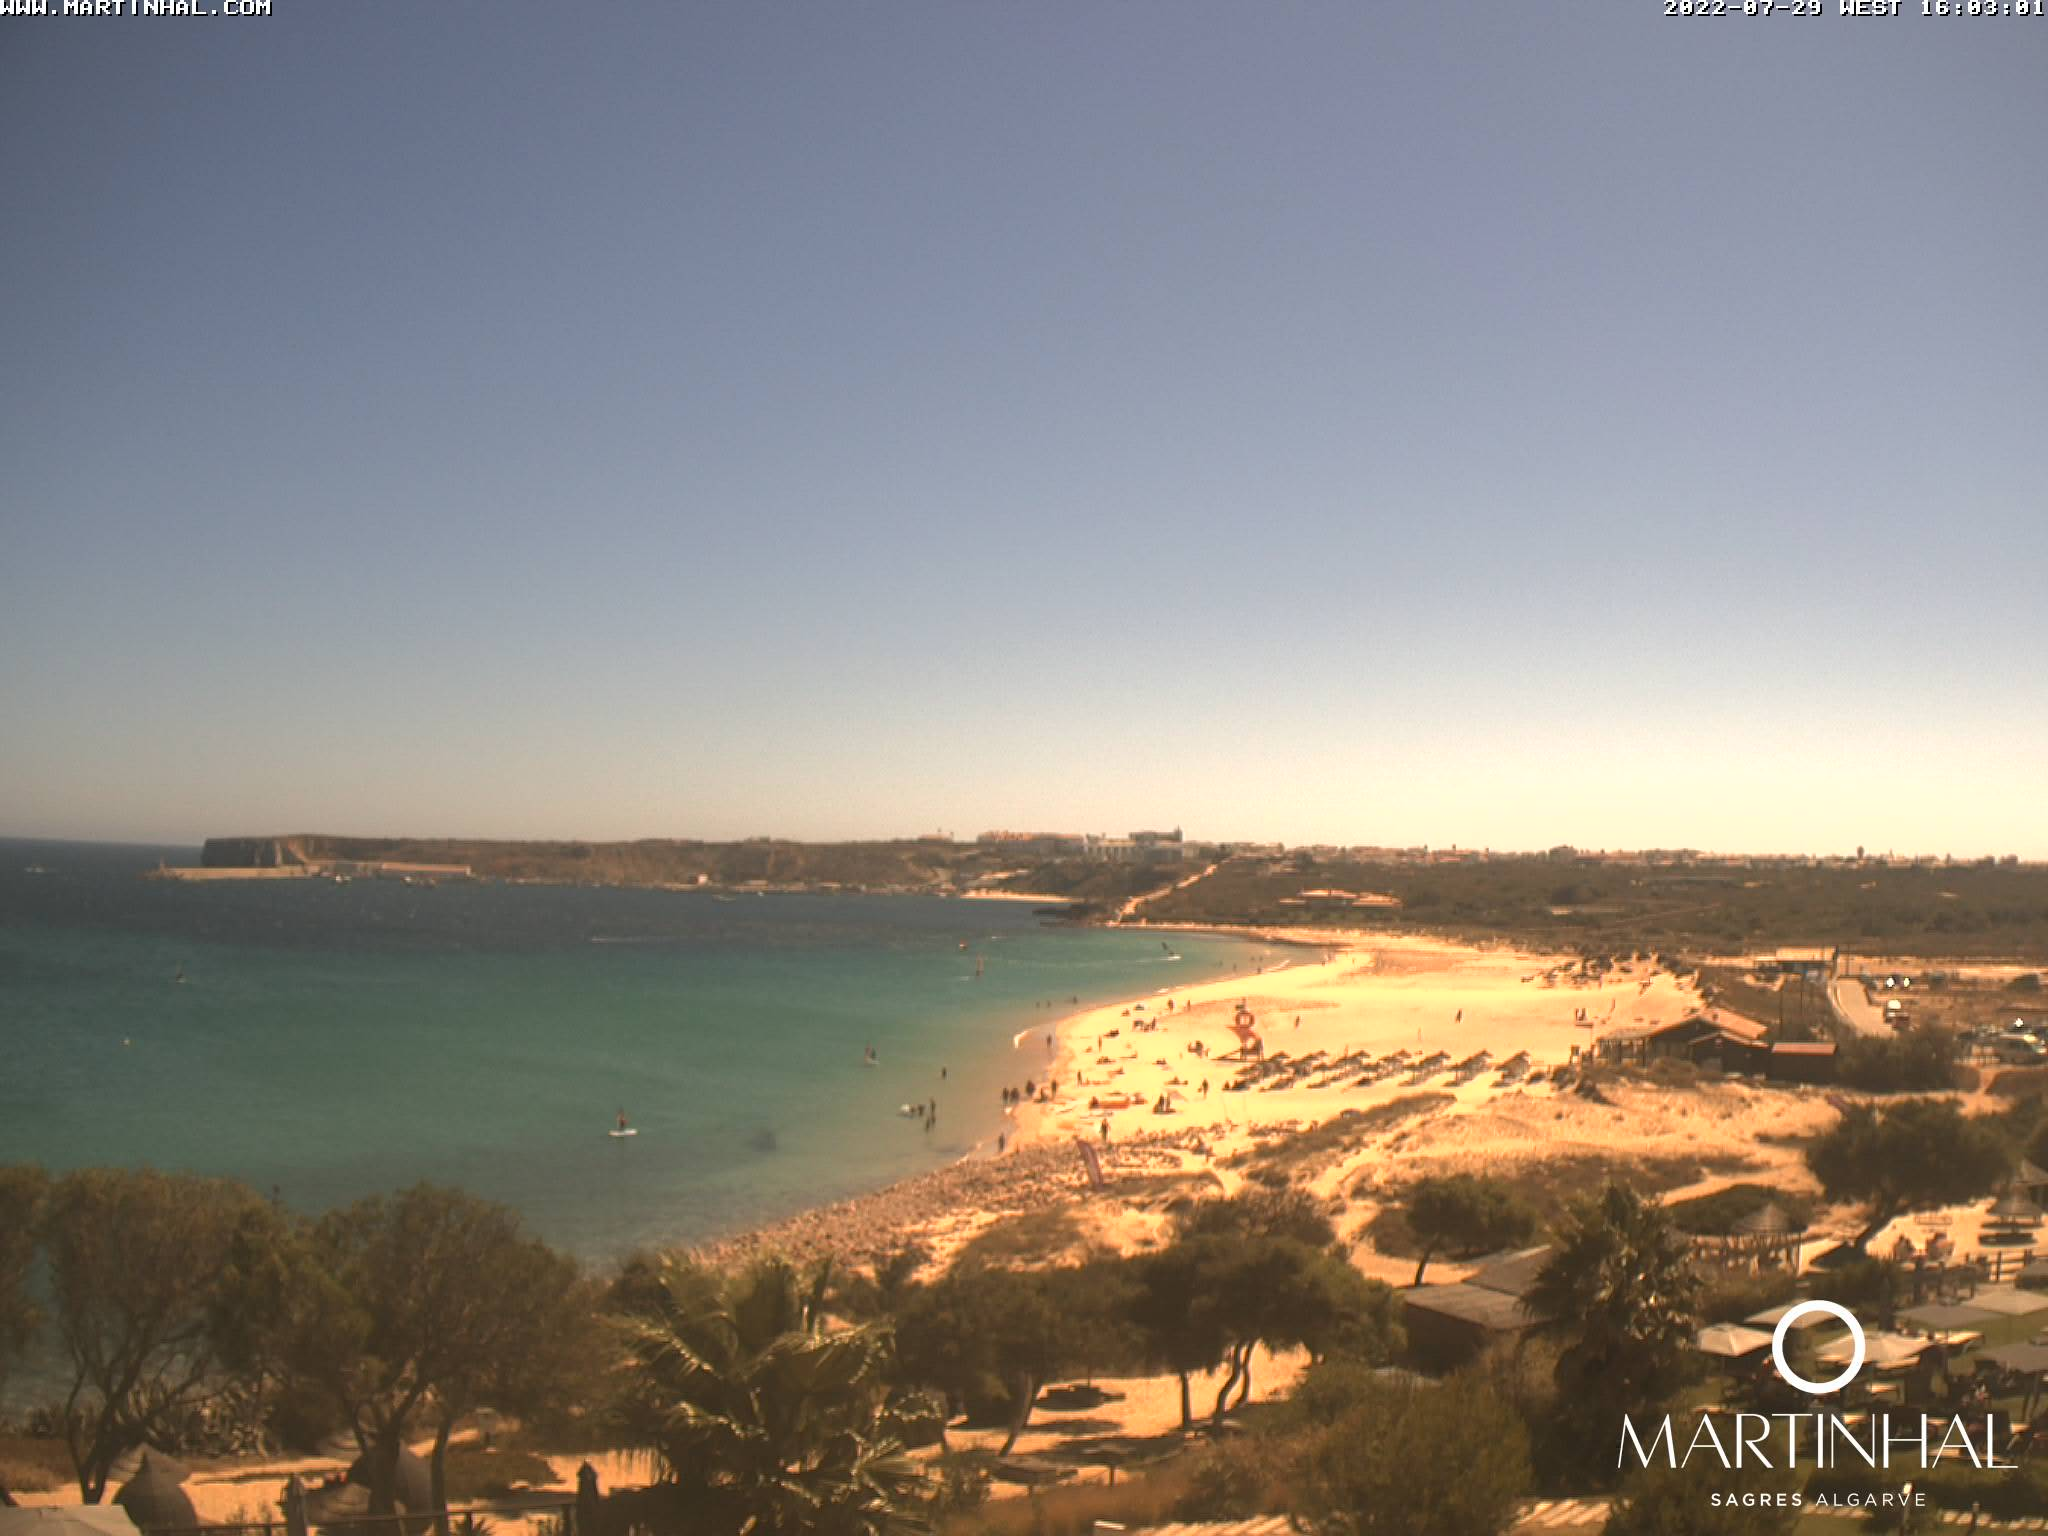 Webcam Sagres Algarve Portugal 4pm